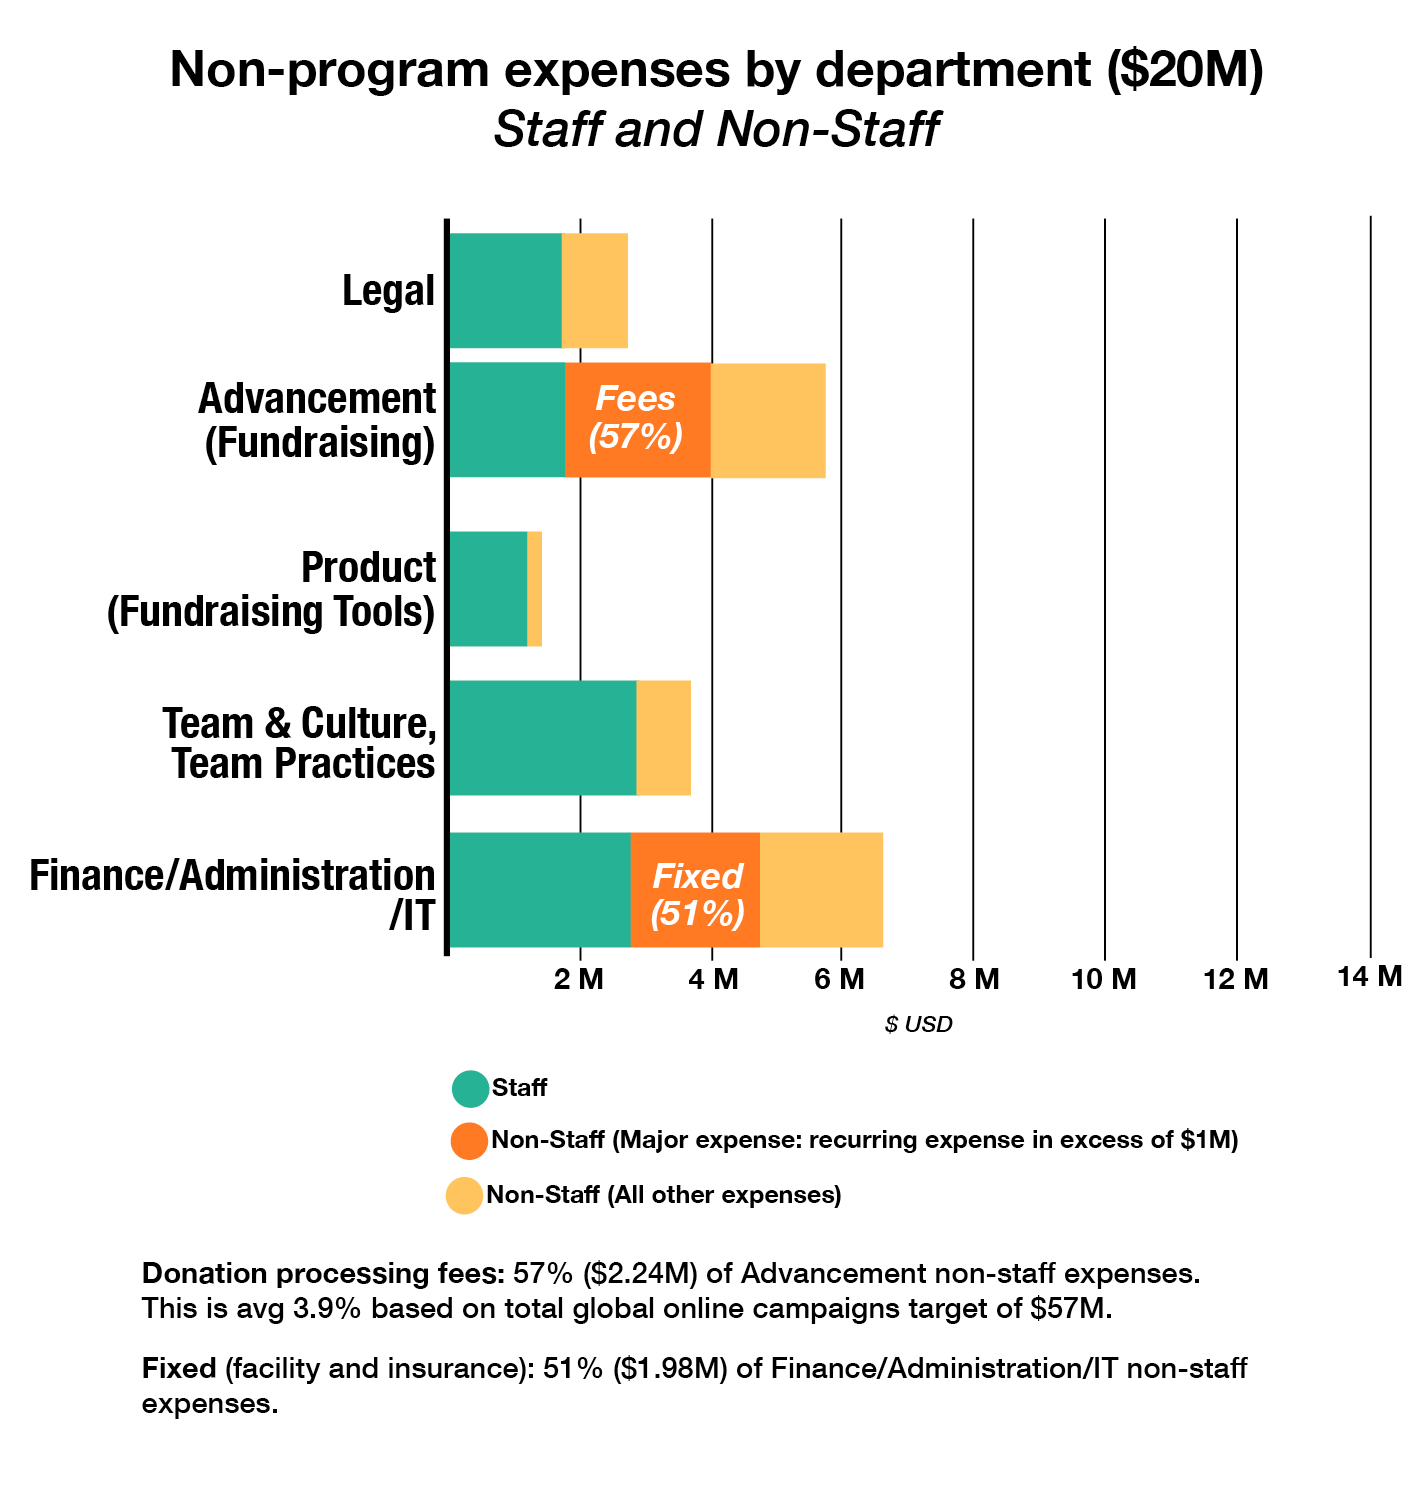 Hr Organizational Chart: 2016 WMF Annual Plan NonProgram expenses staff 6 non.jpg ,Chart